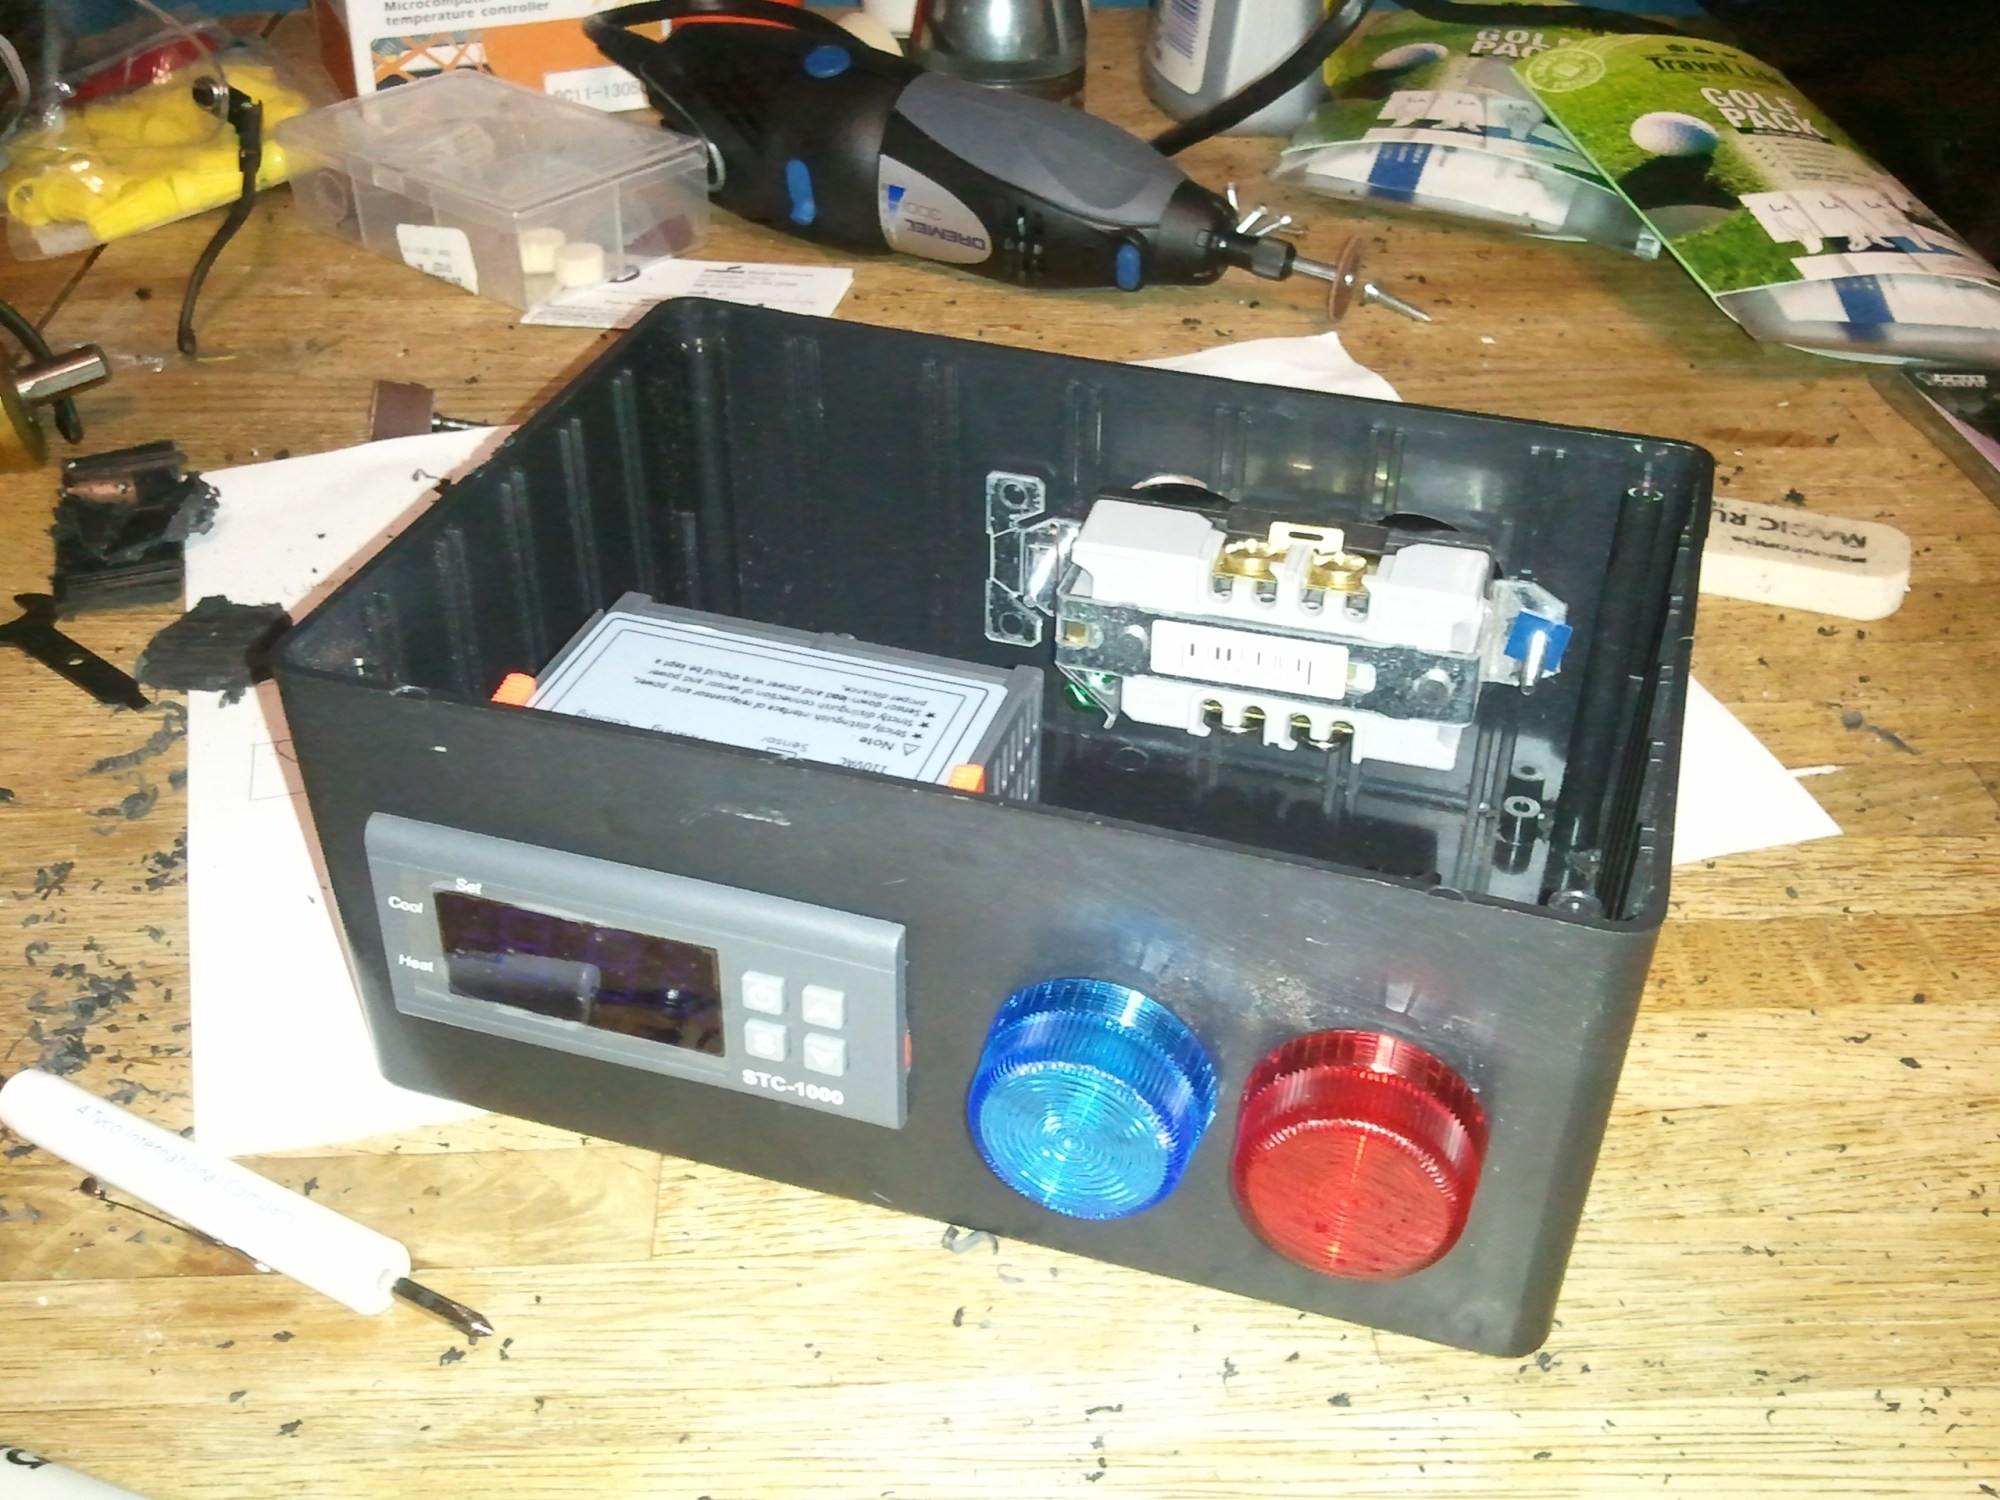 hight resolution of diy stc 1000 2 stage temperature controller wiring diagram with indicator lights loudmouthbrewer